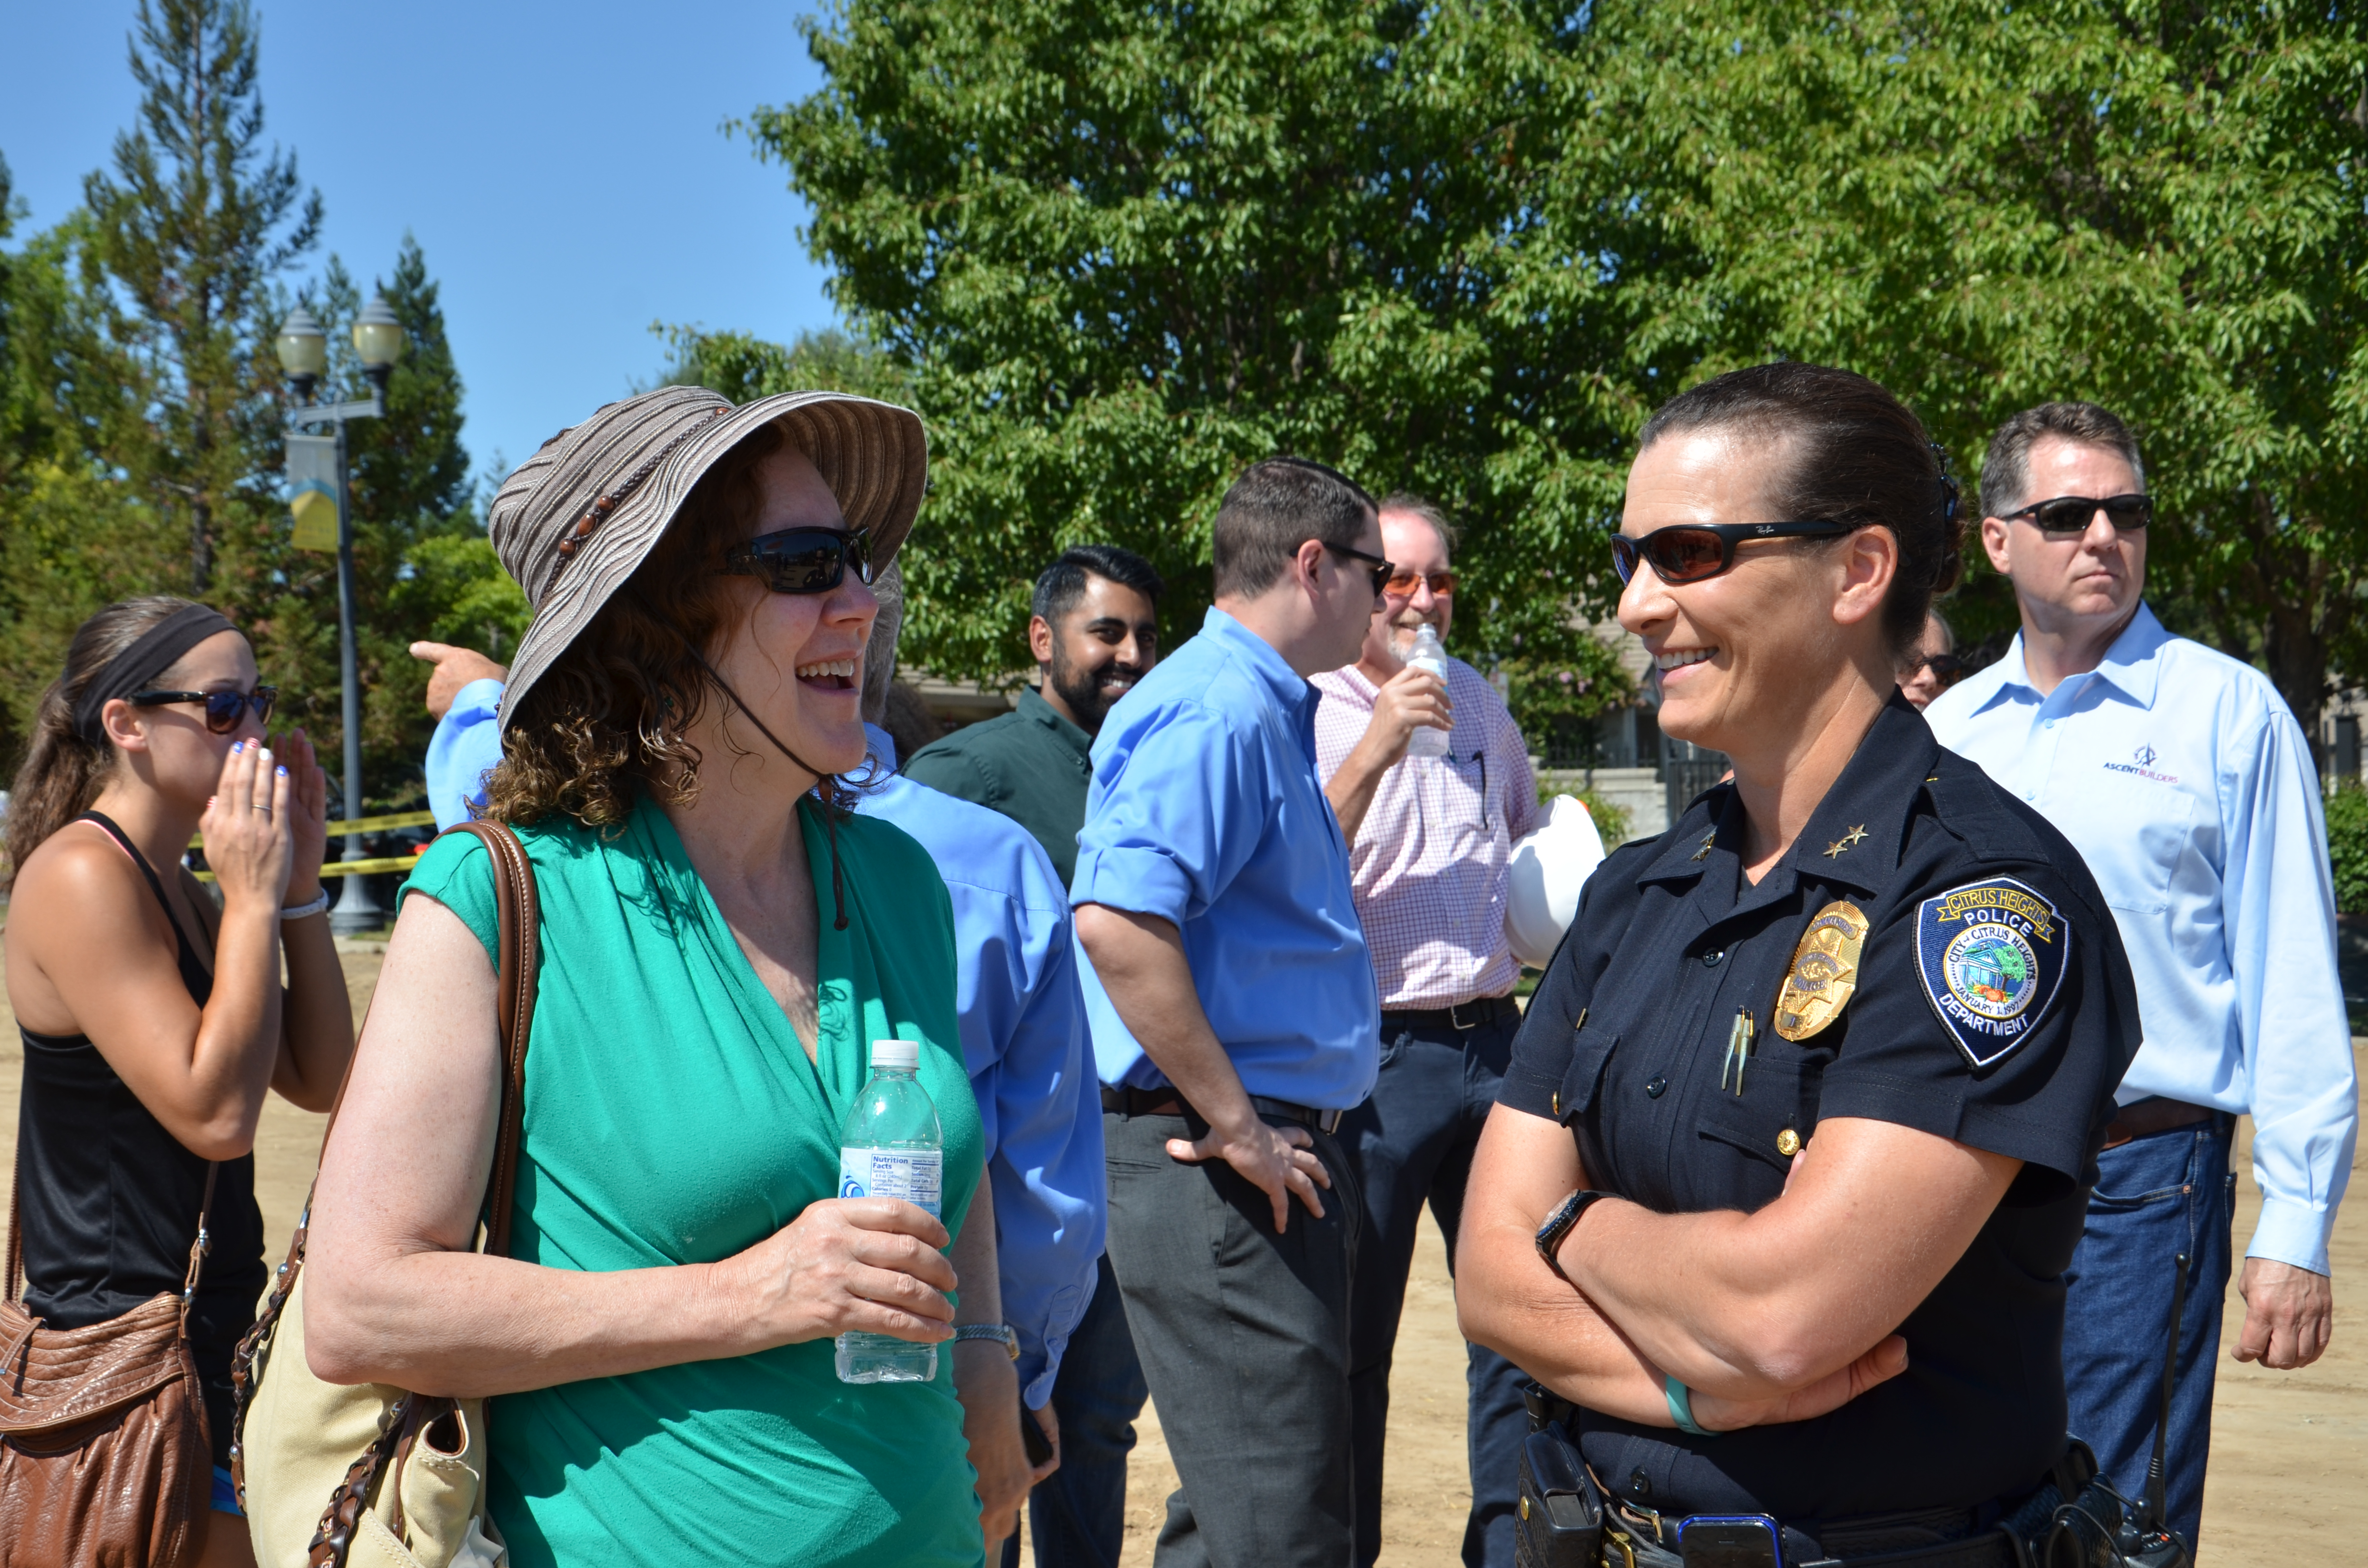 Community members and police officers mingle